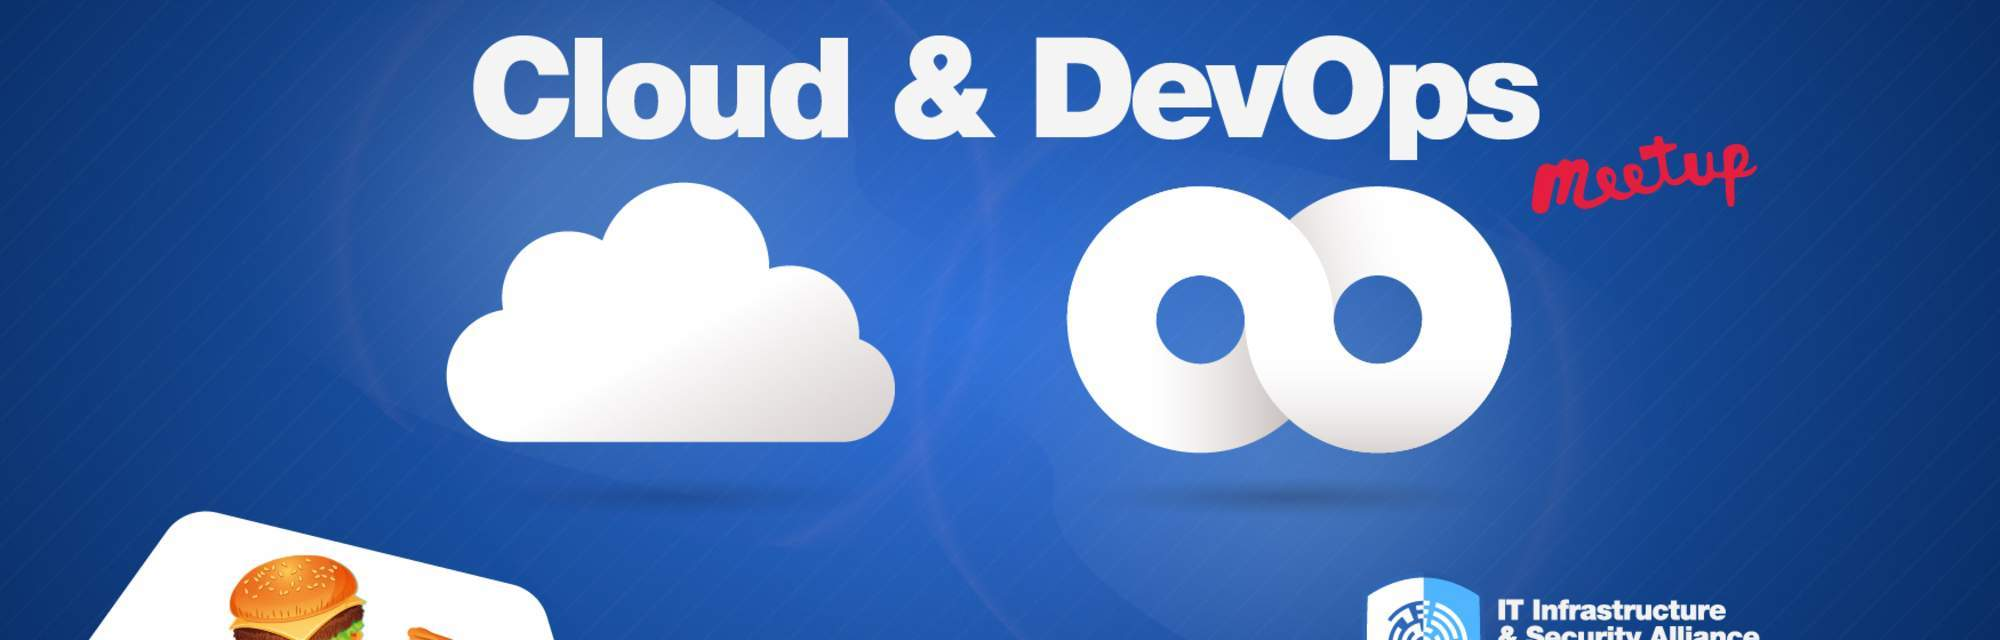 Event banner: Cloud & DevOps Meetup